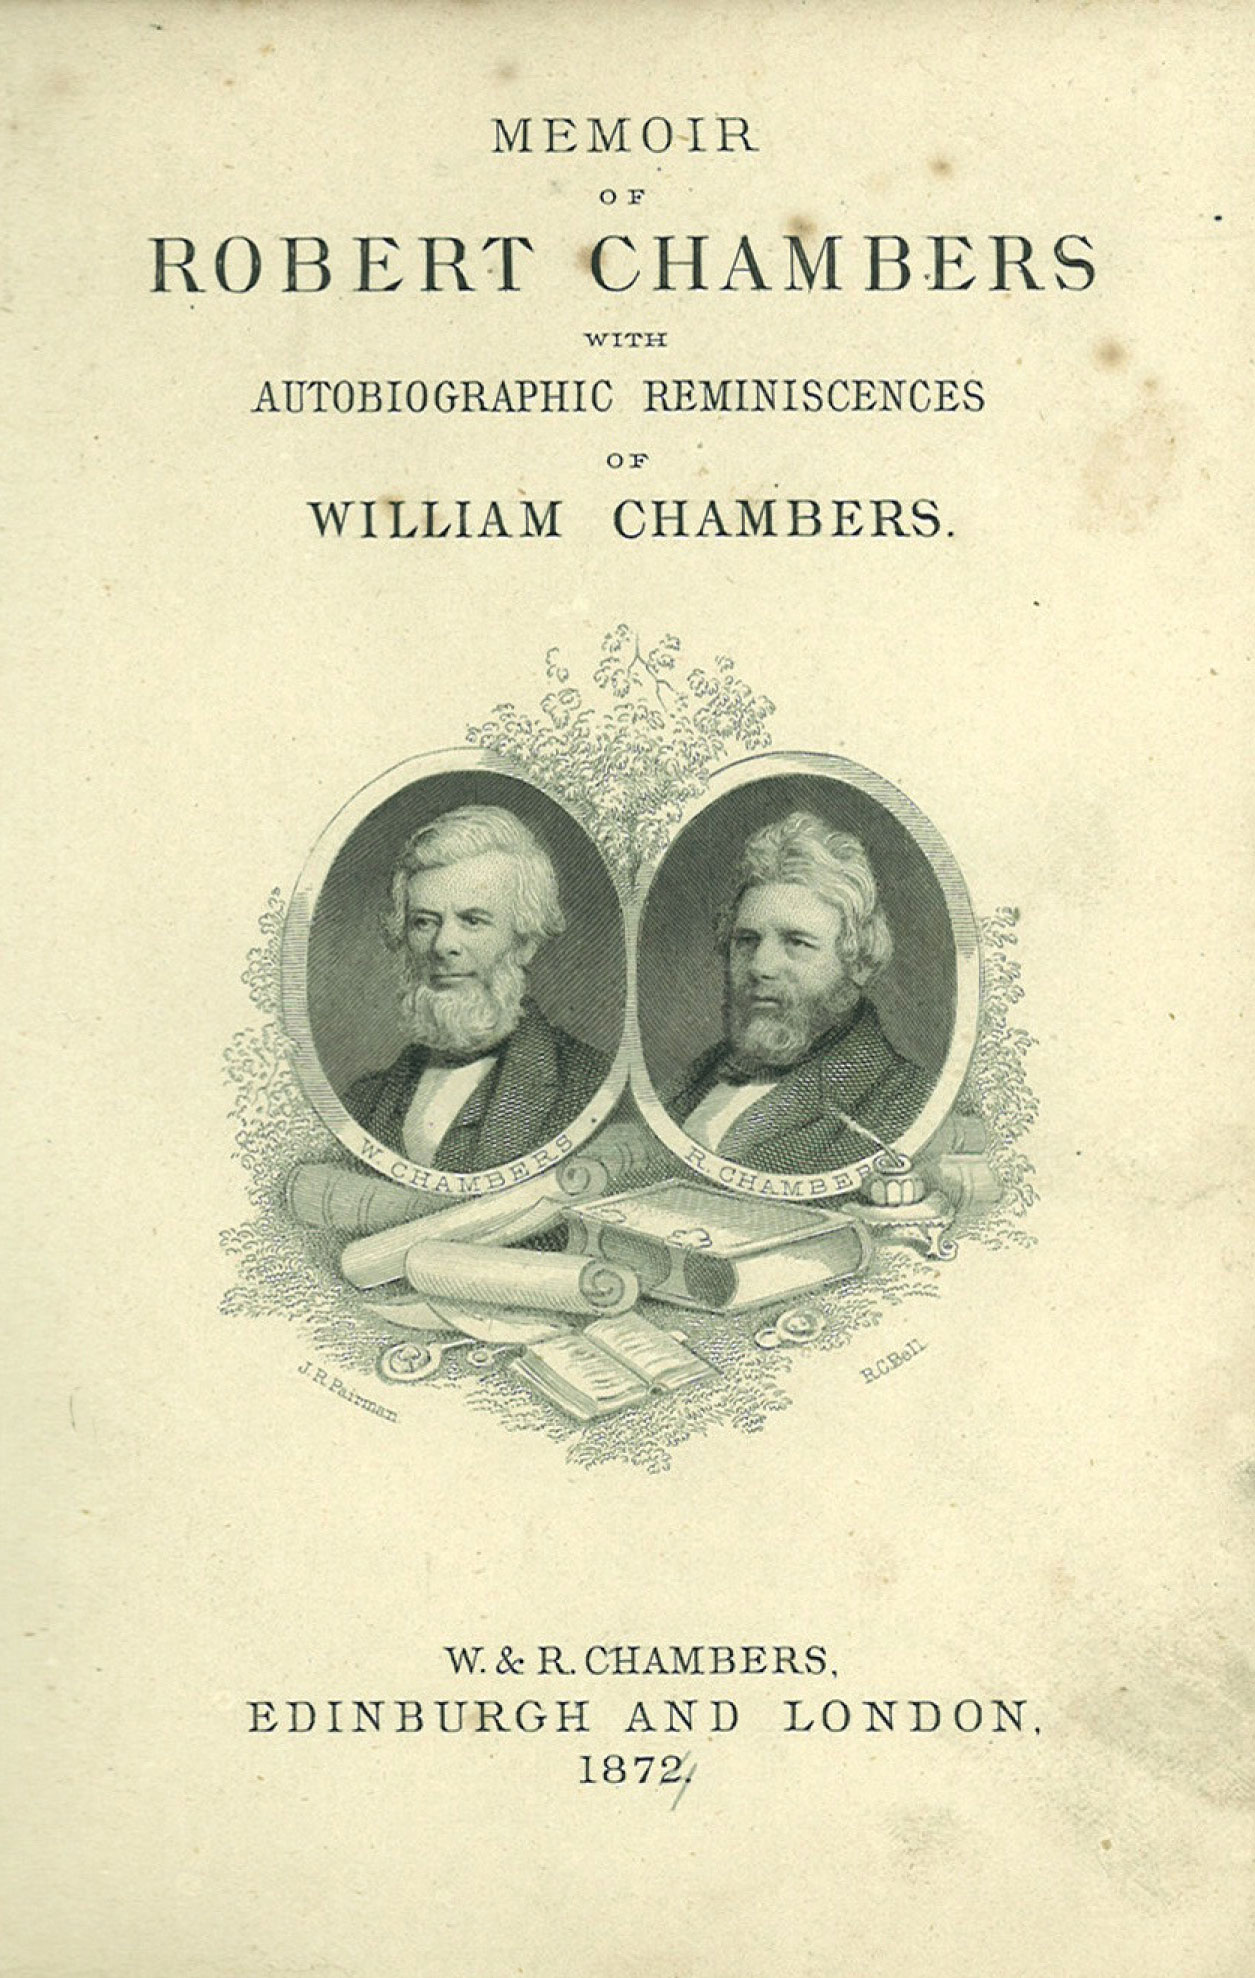 Frontpiece of the Memoir of Robert Chambers showing images of William and Robert Chambers.